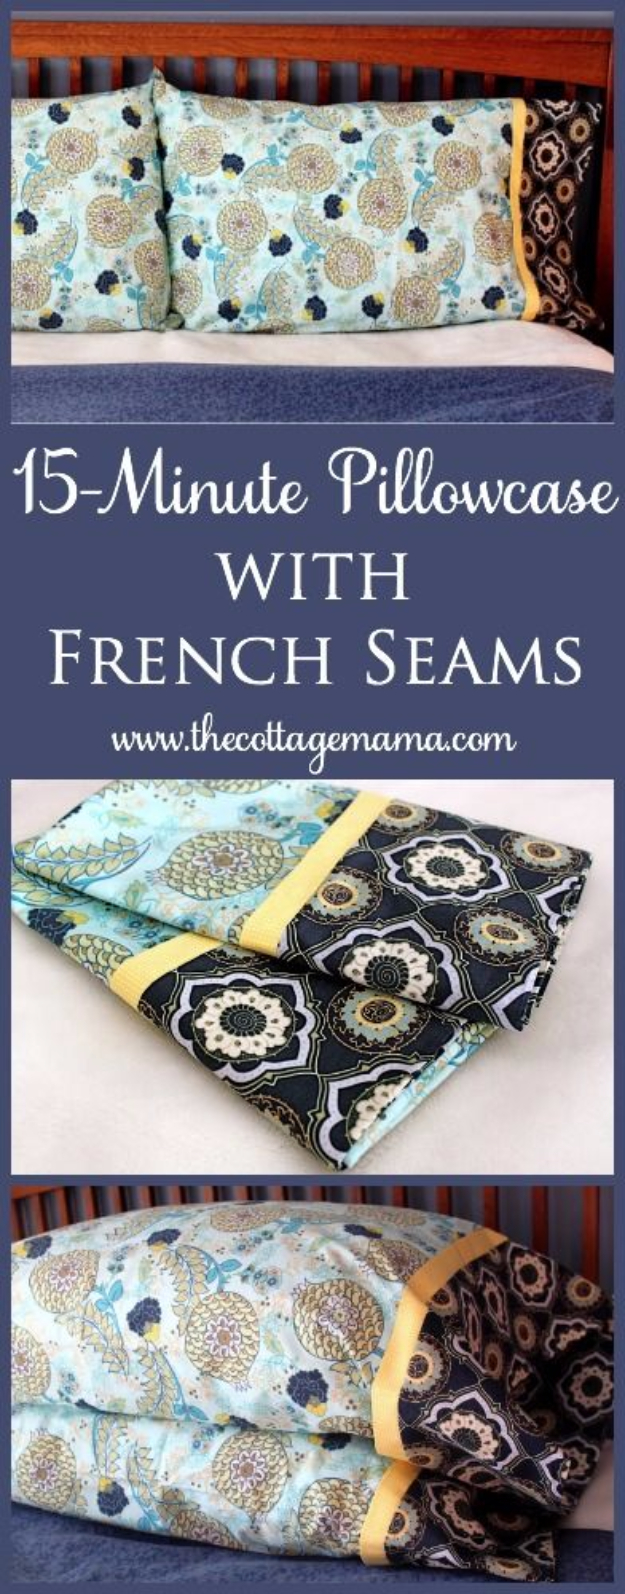 DIY Pillowcases - 15 Minute Pillowcase With French Seams - Easy Sewing Projects for Pillows - Bedroom and Home Decor Ideas - Sewing Patterns and Tutorials - No Sew Ideas - DIY Projects and Crafts for Women #sewing #diydecor #pillows